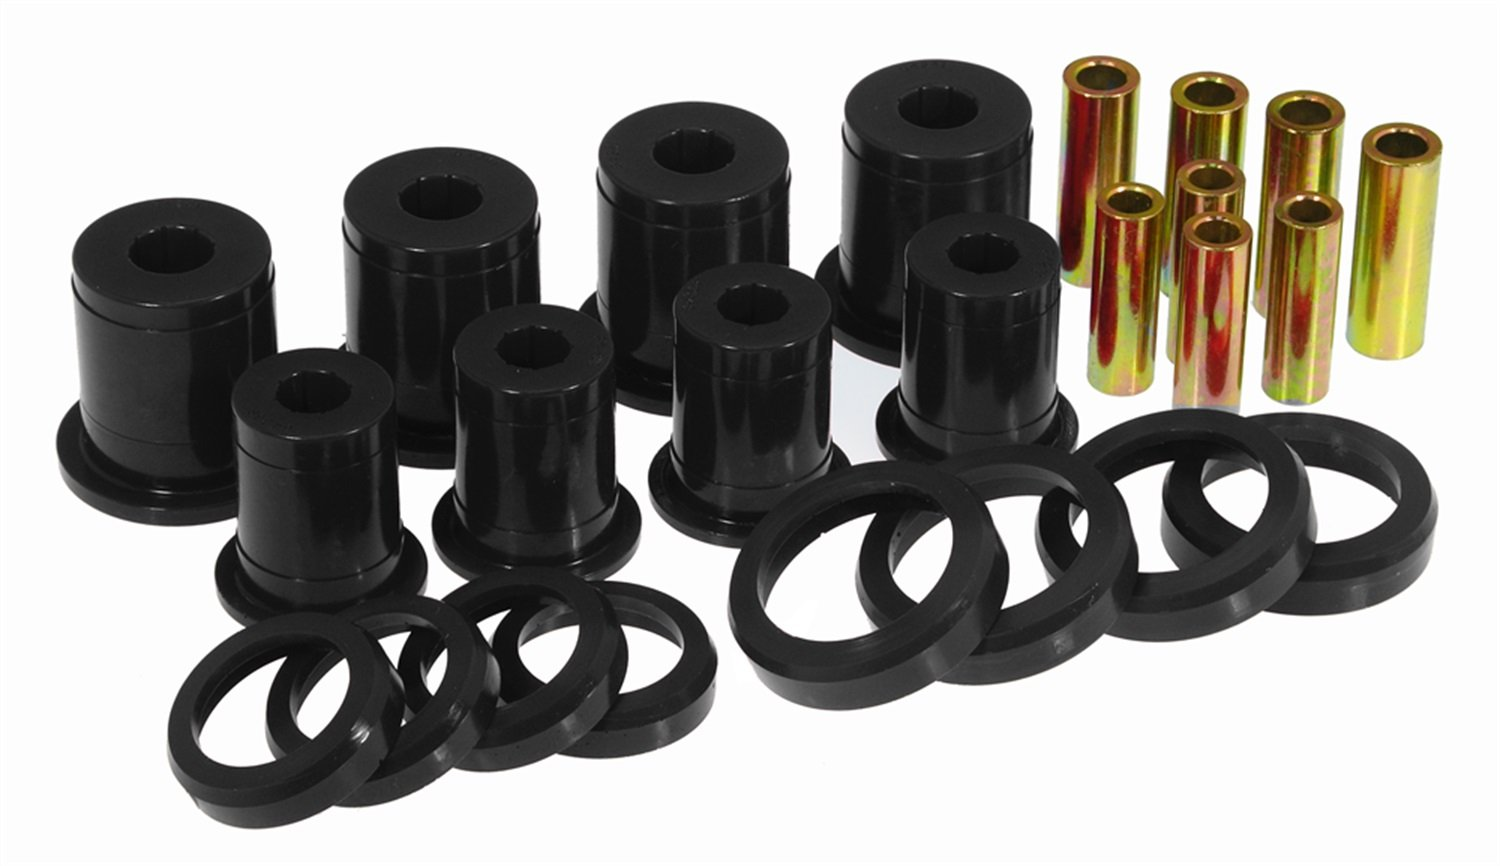 Prothane 4-211-BL Black Front Control Arm Bushing Kit